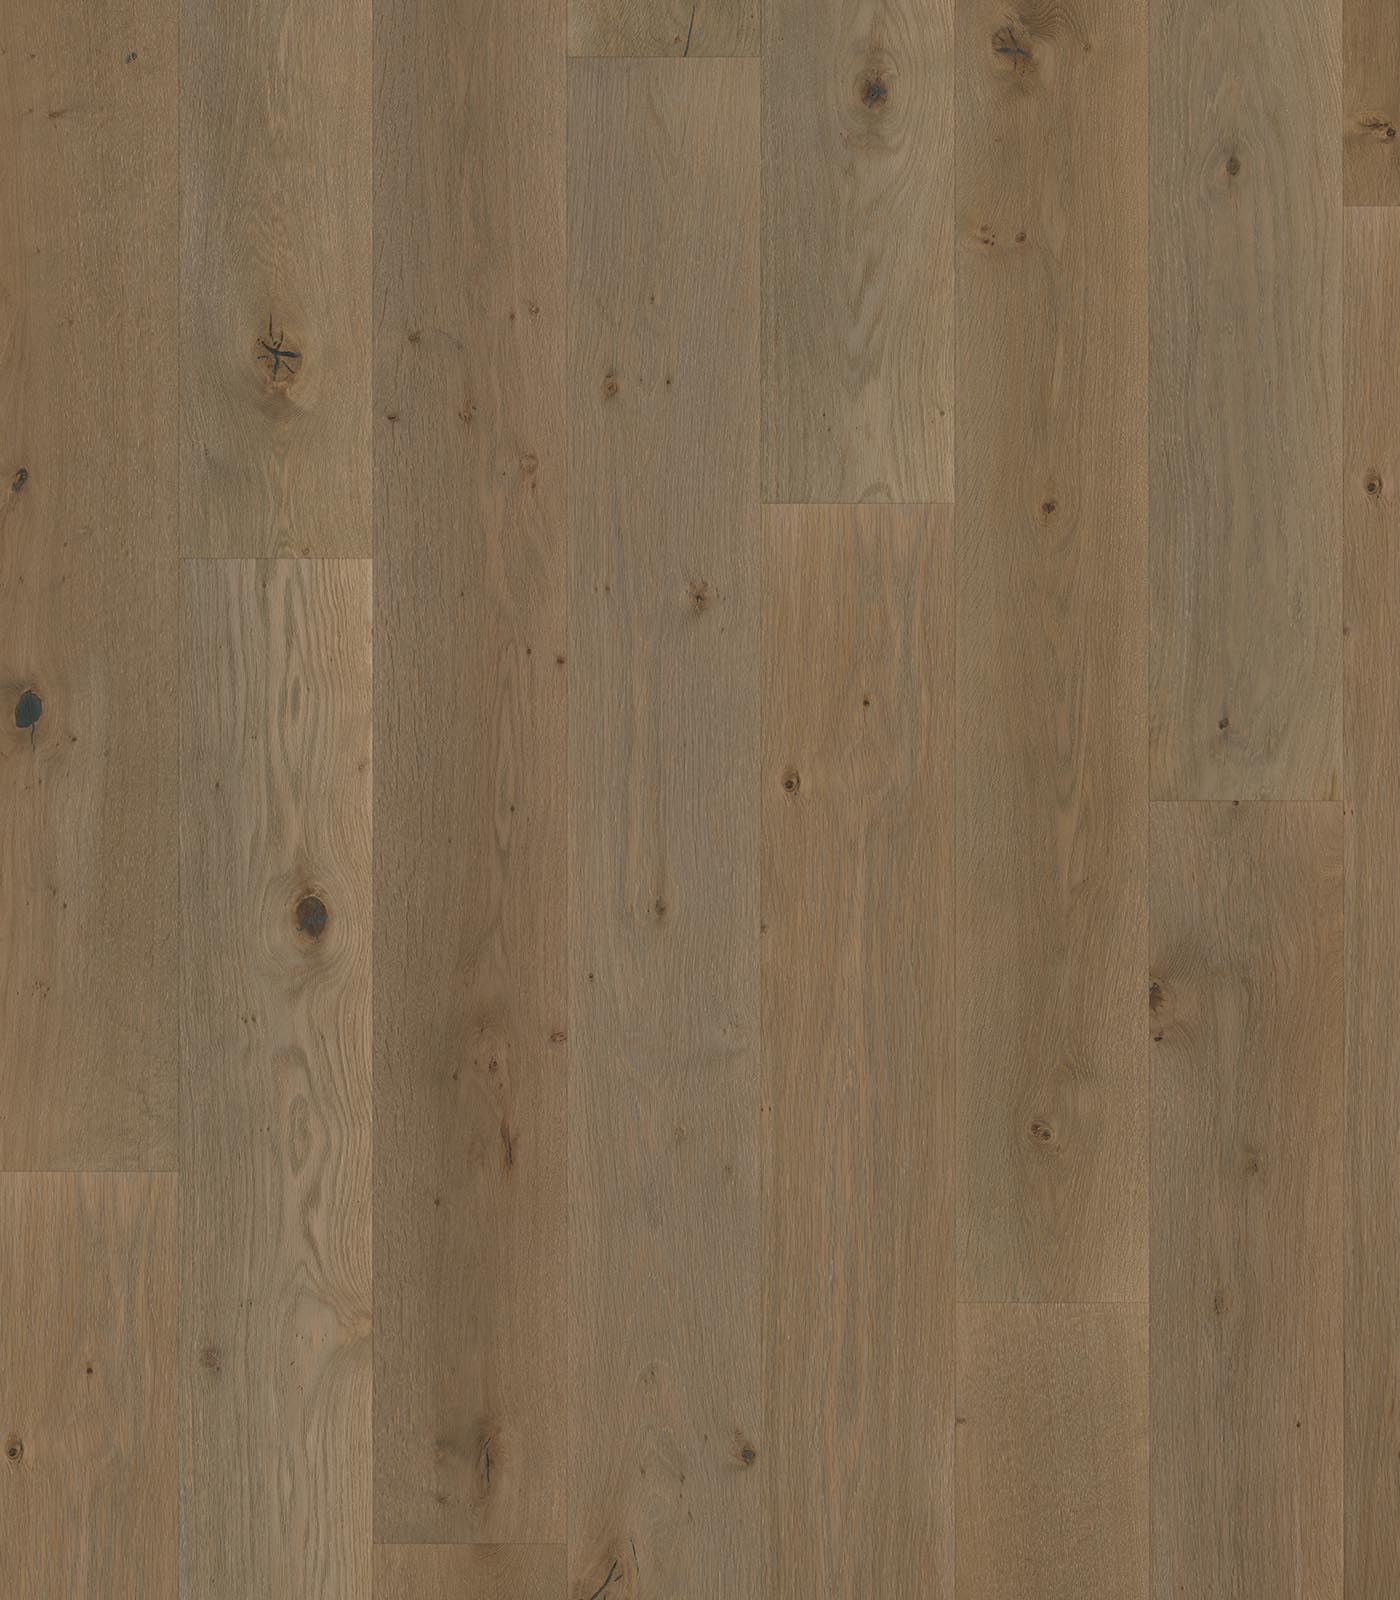 Bequia-Island Collection-European Oak floors-flat